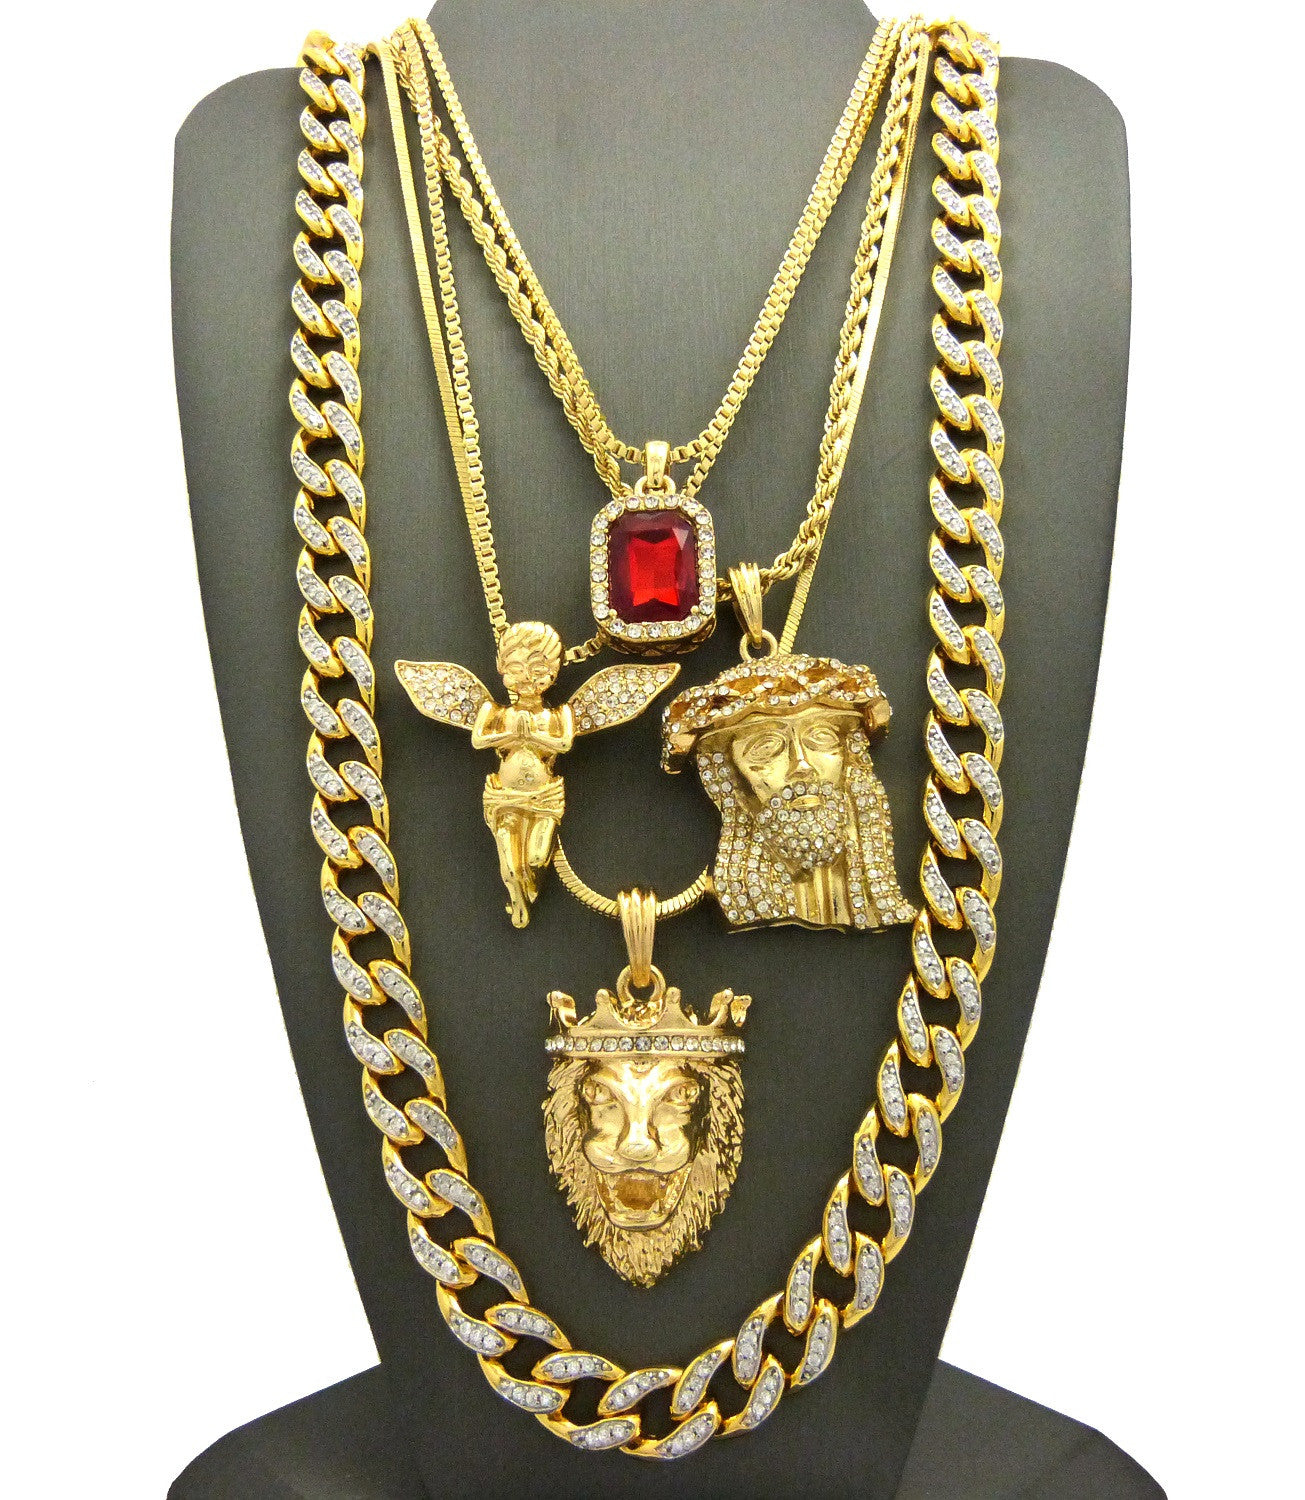 5 Chain Set: 18K Gold Plated Iced Out Cuban Angel Ruby Jesus